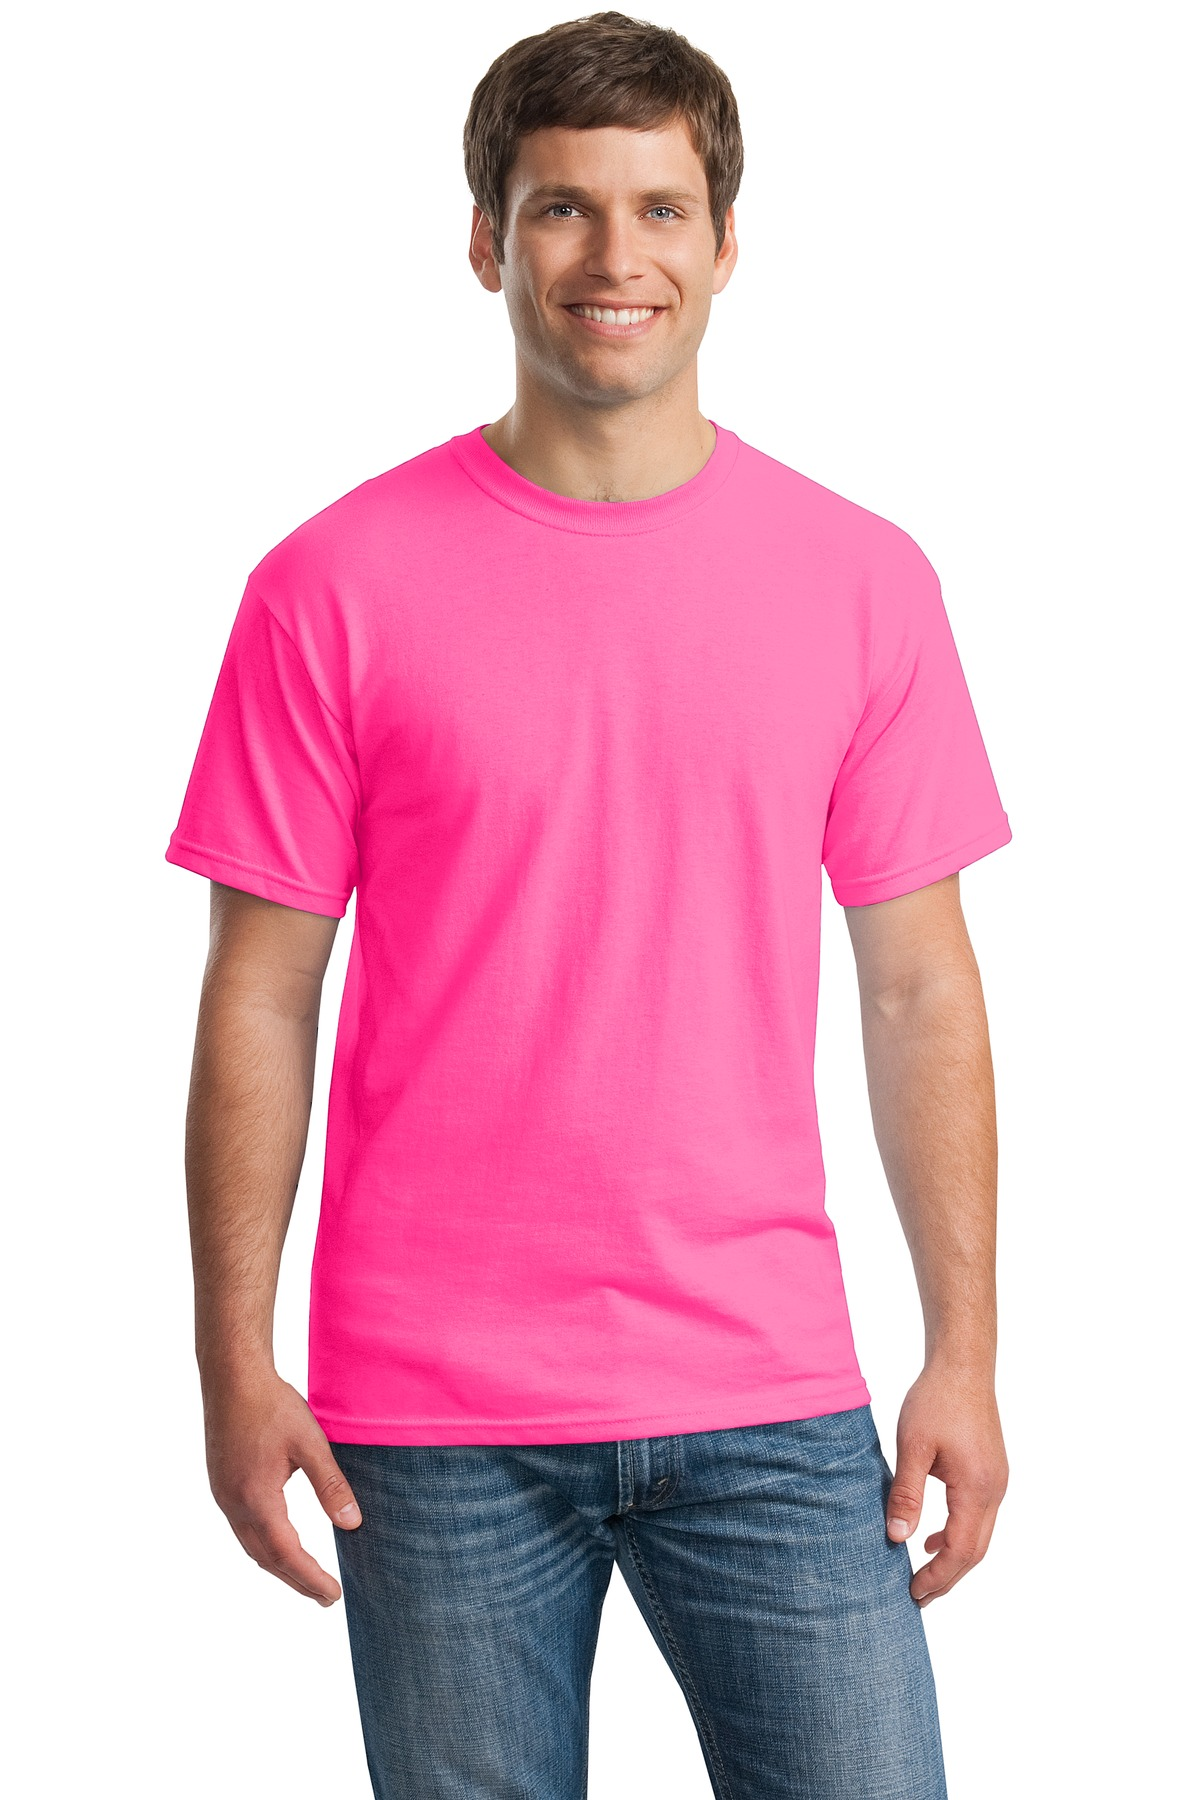 Gildan ®  - Heavy Cotton ™  100% Cotton T-Shirt.  5000 - Safety Pink